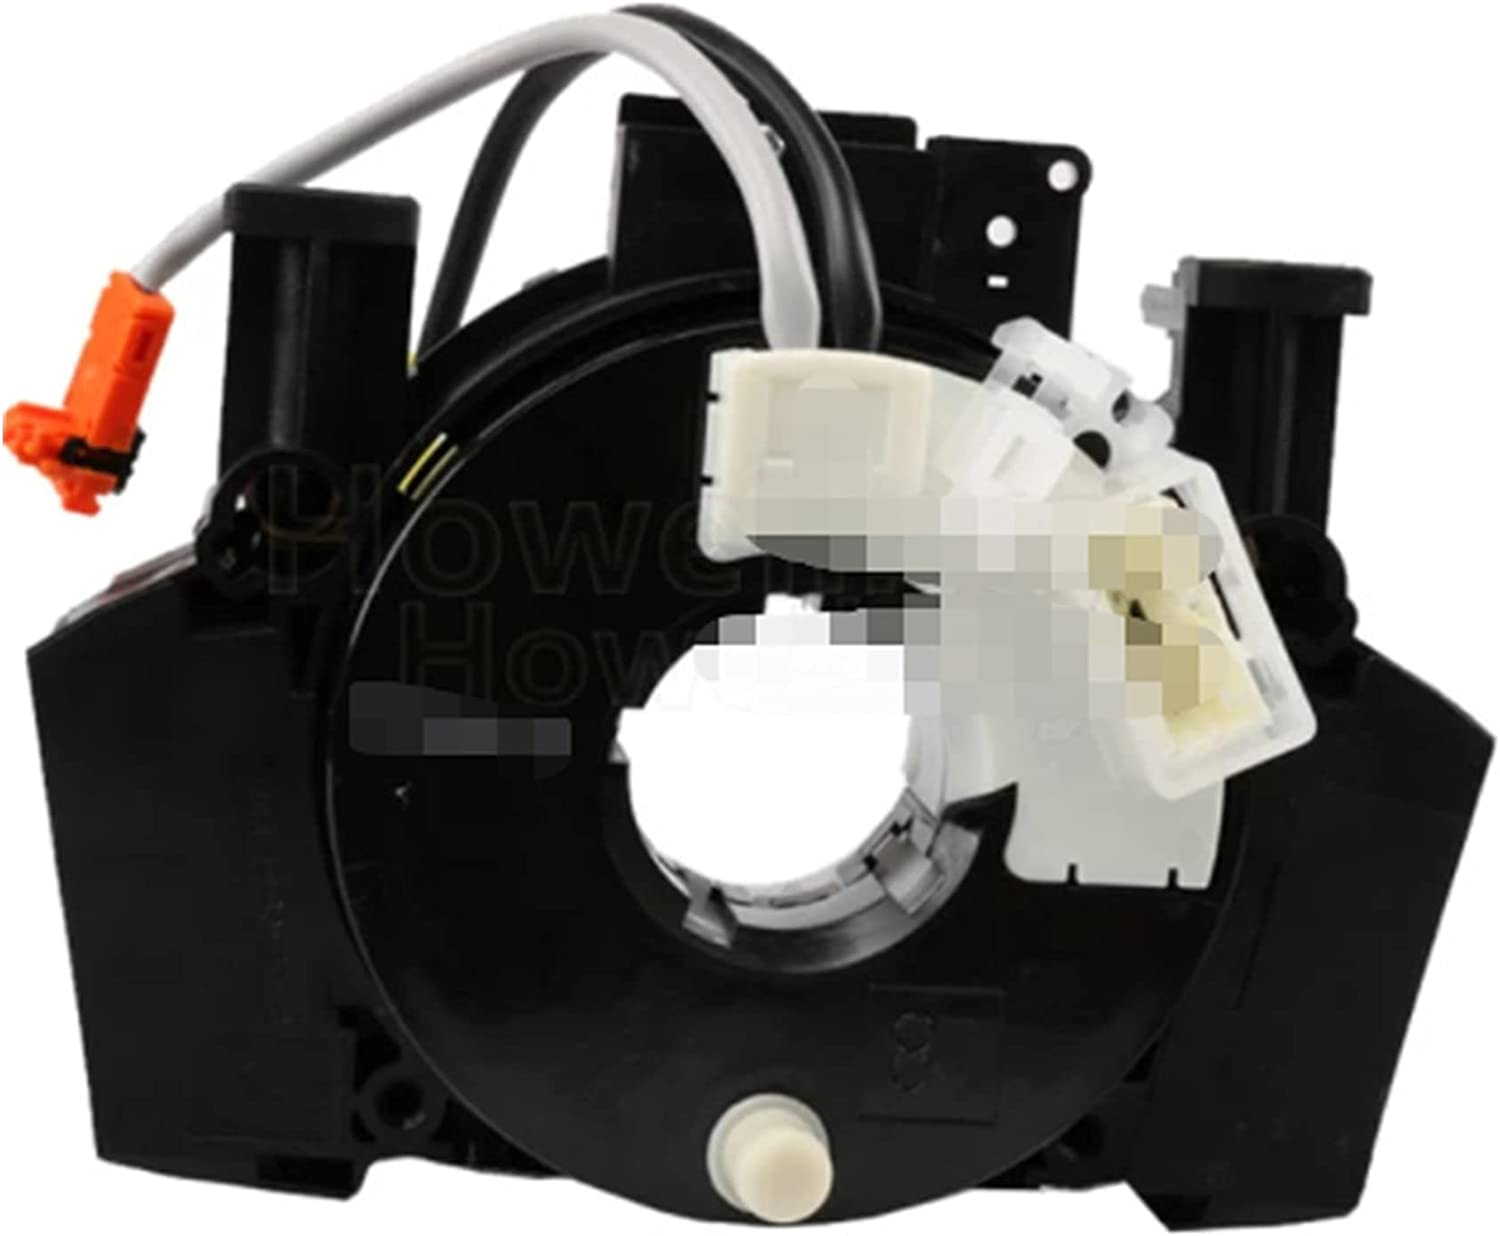 Xjun Max 44% OFF Store Replace cable assy B5567-JD00 25567-ET025 store 25560-JD003